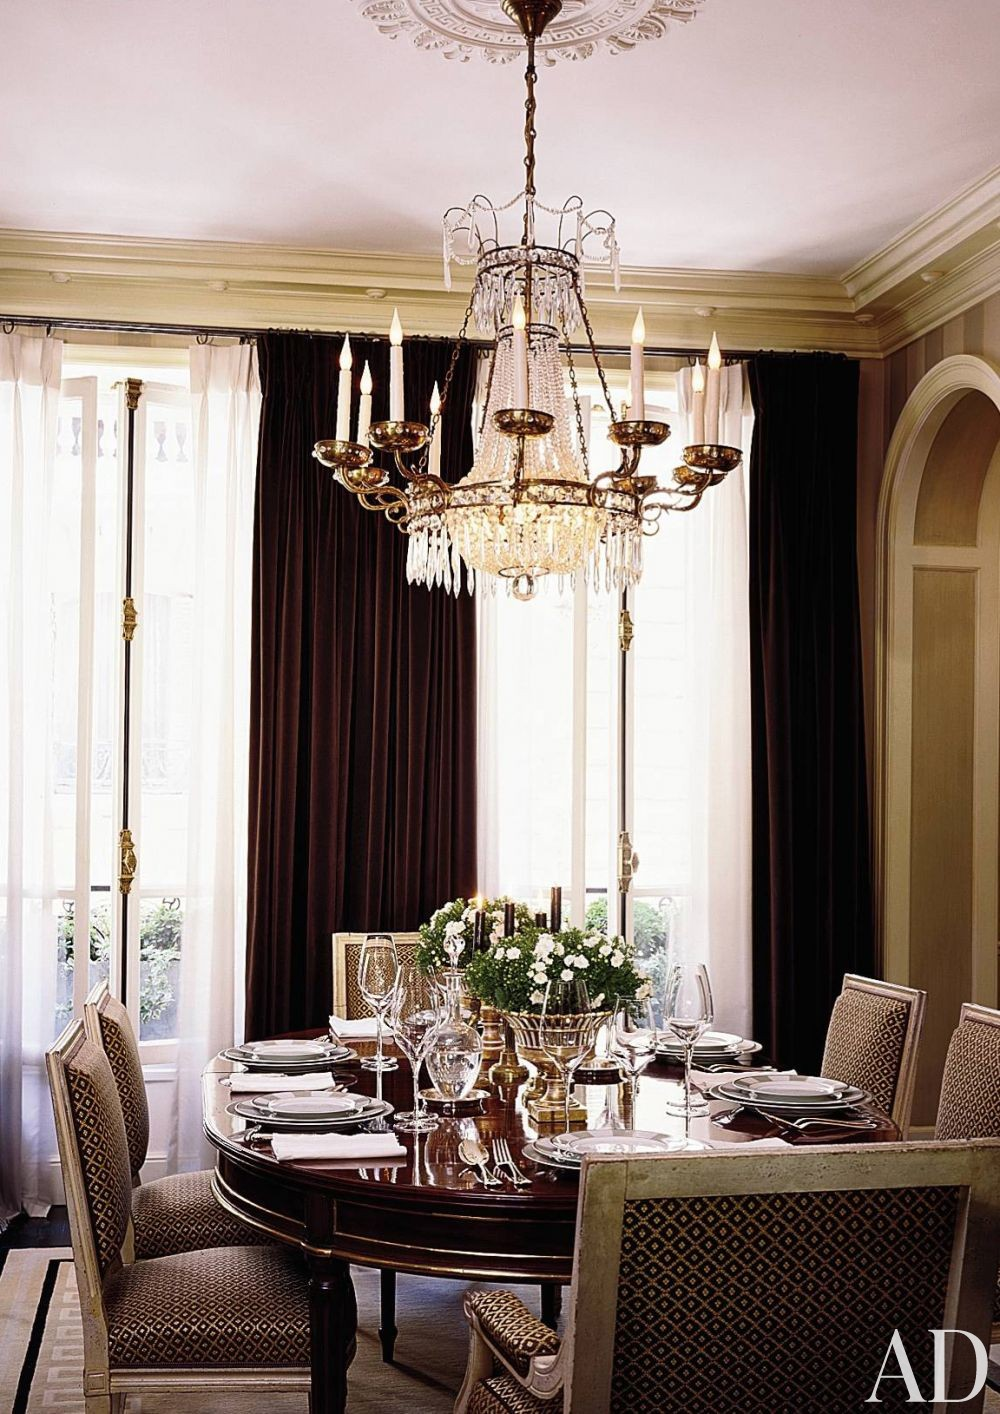 Traditional Dining Room by Jean-Louis Deniot in Paris, France